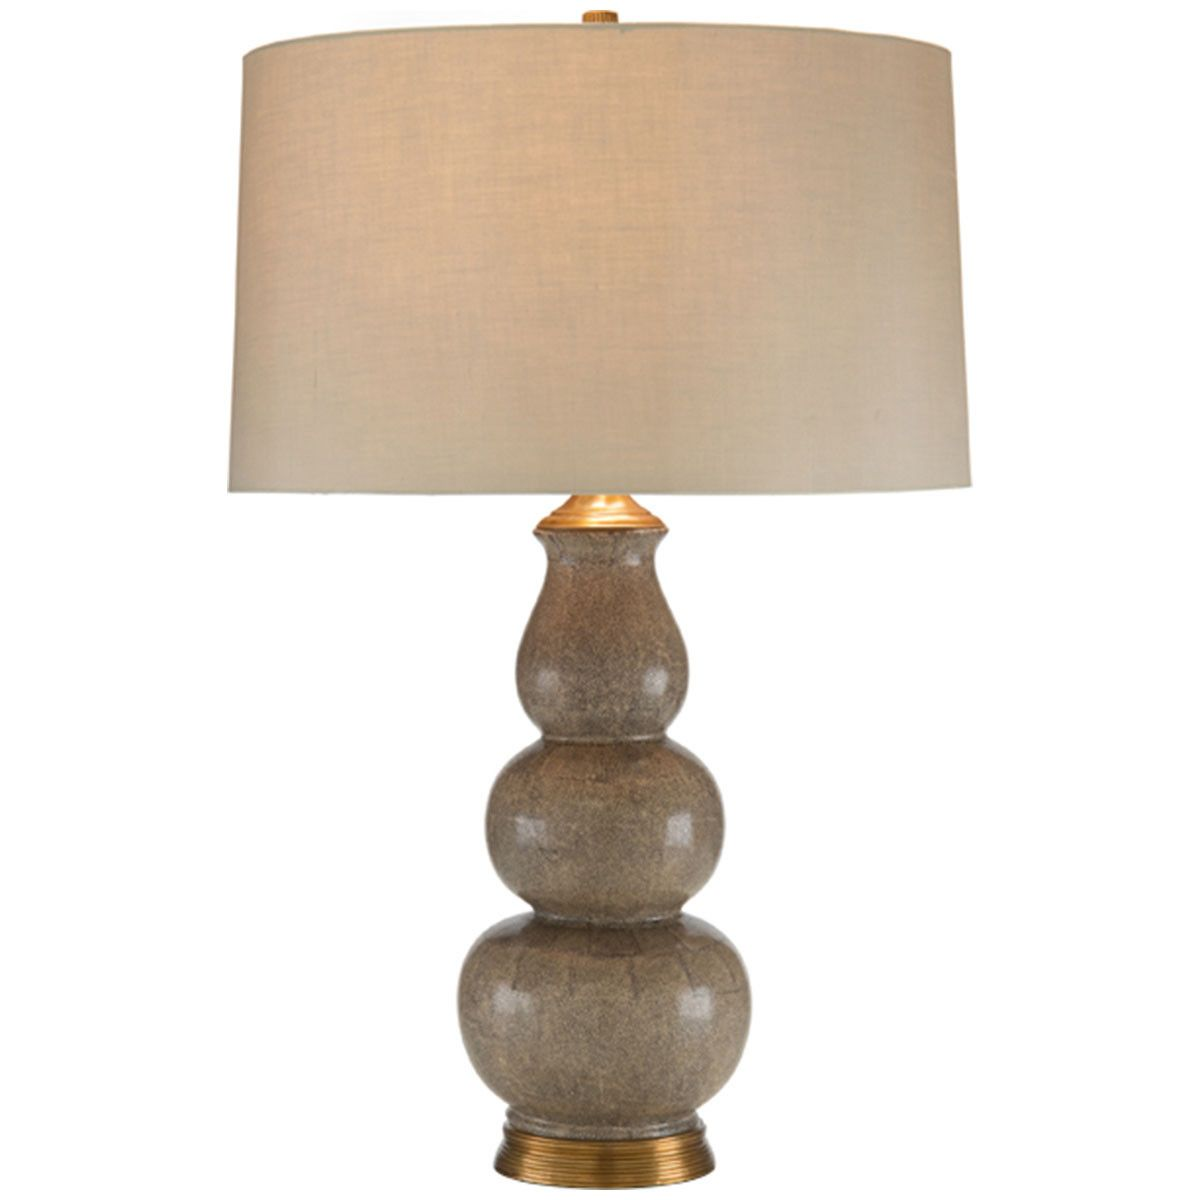 John richard shagreen gourd table lamp lamps pinterest john richard shagreen gourd table lamp geotapseo Image collections